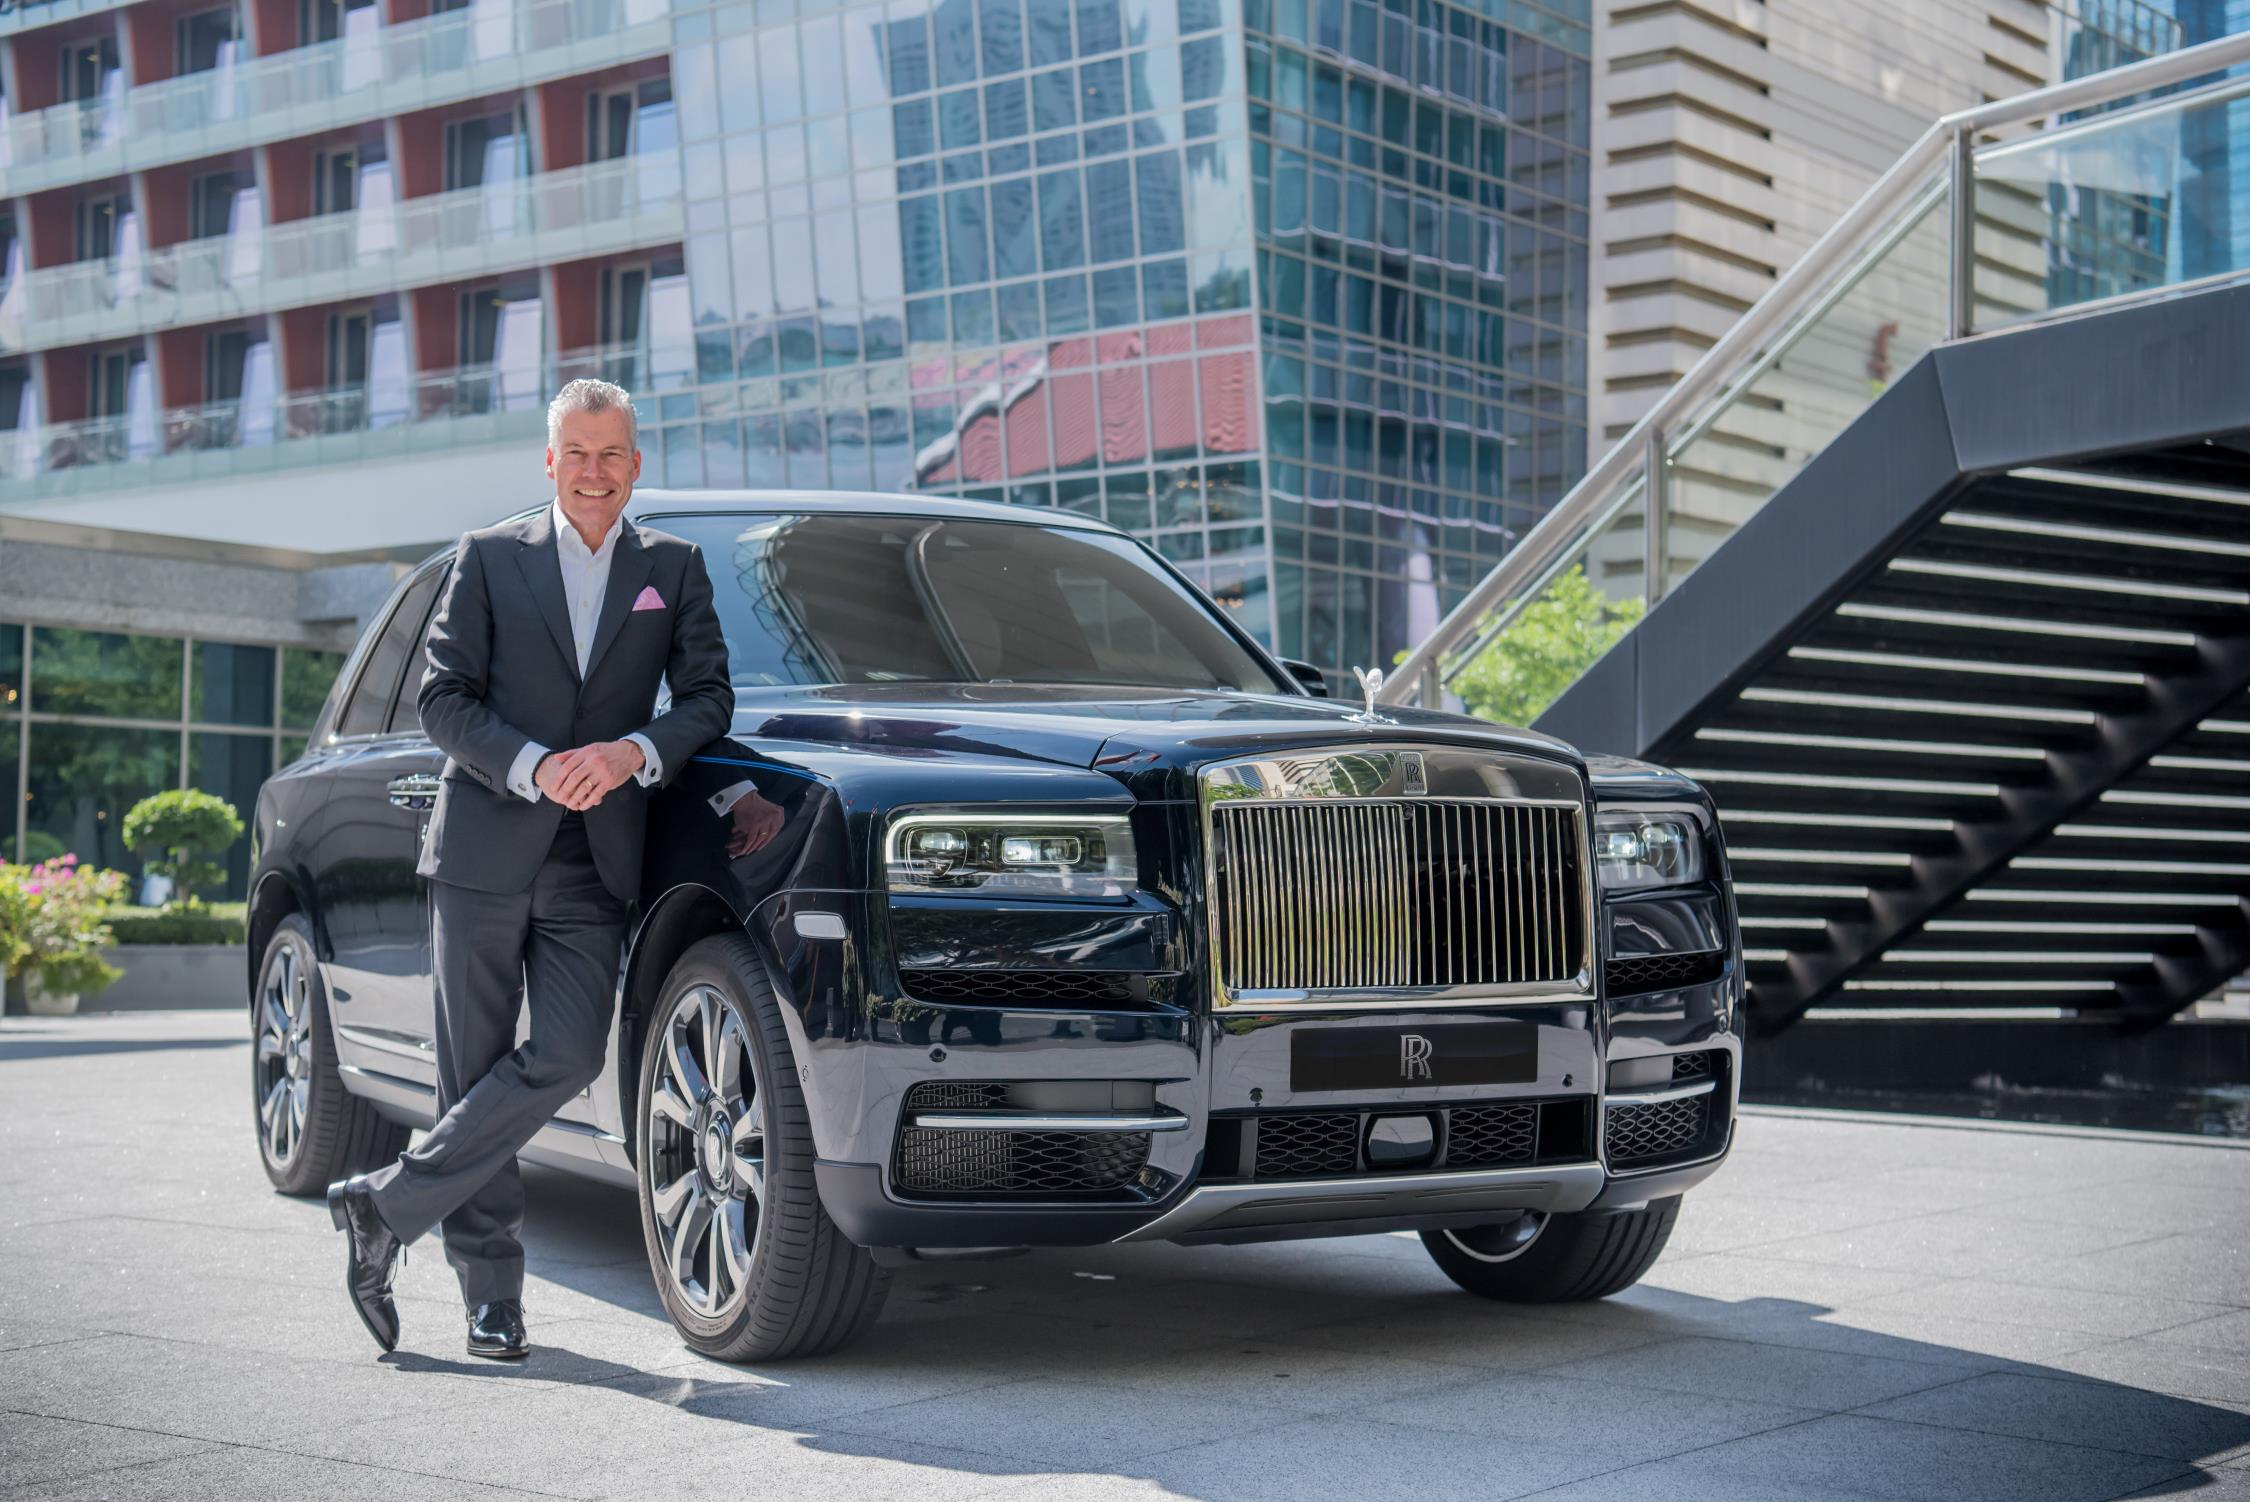 Torsten Muller-Otvos, Chief Executive Officer, Rolls-Royce Motor Cars with Rolls-Royce Cullinan (LEAD)